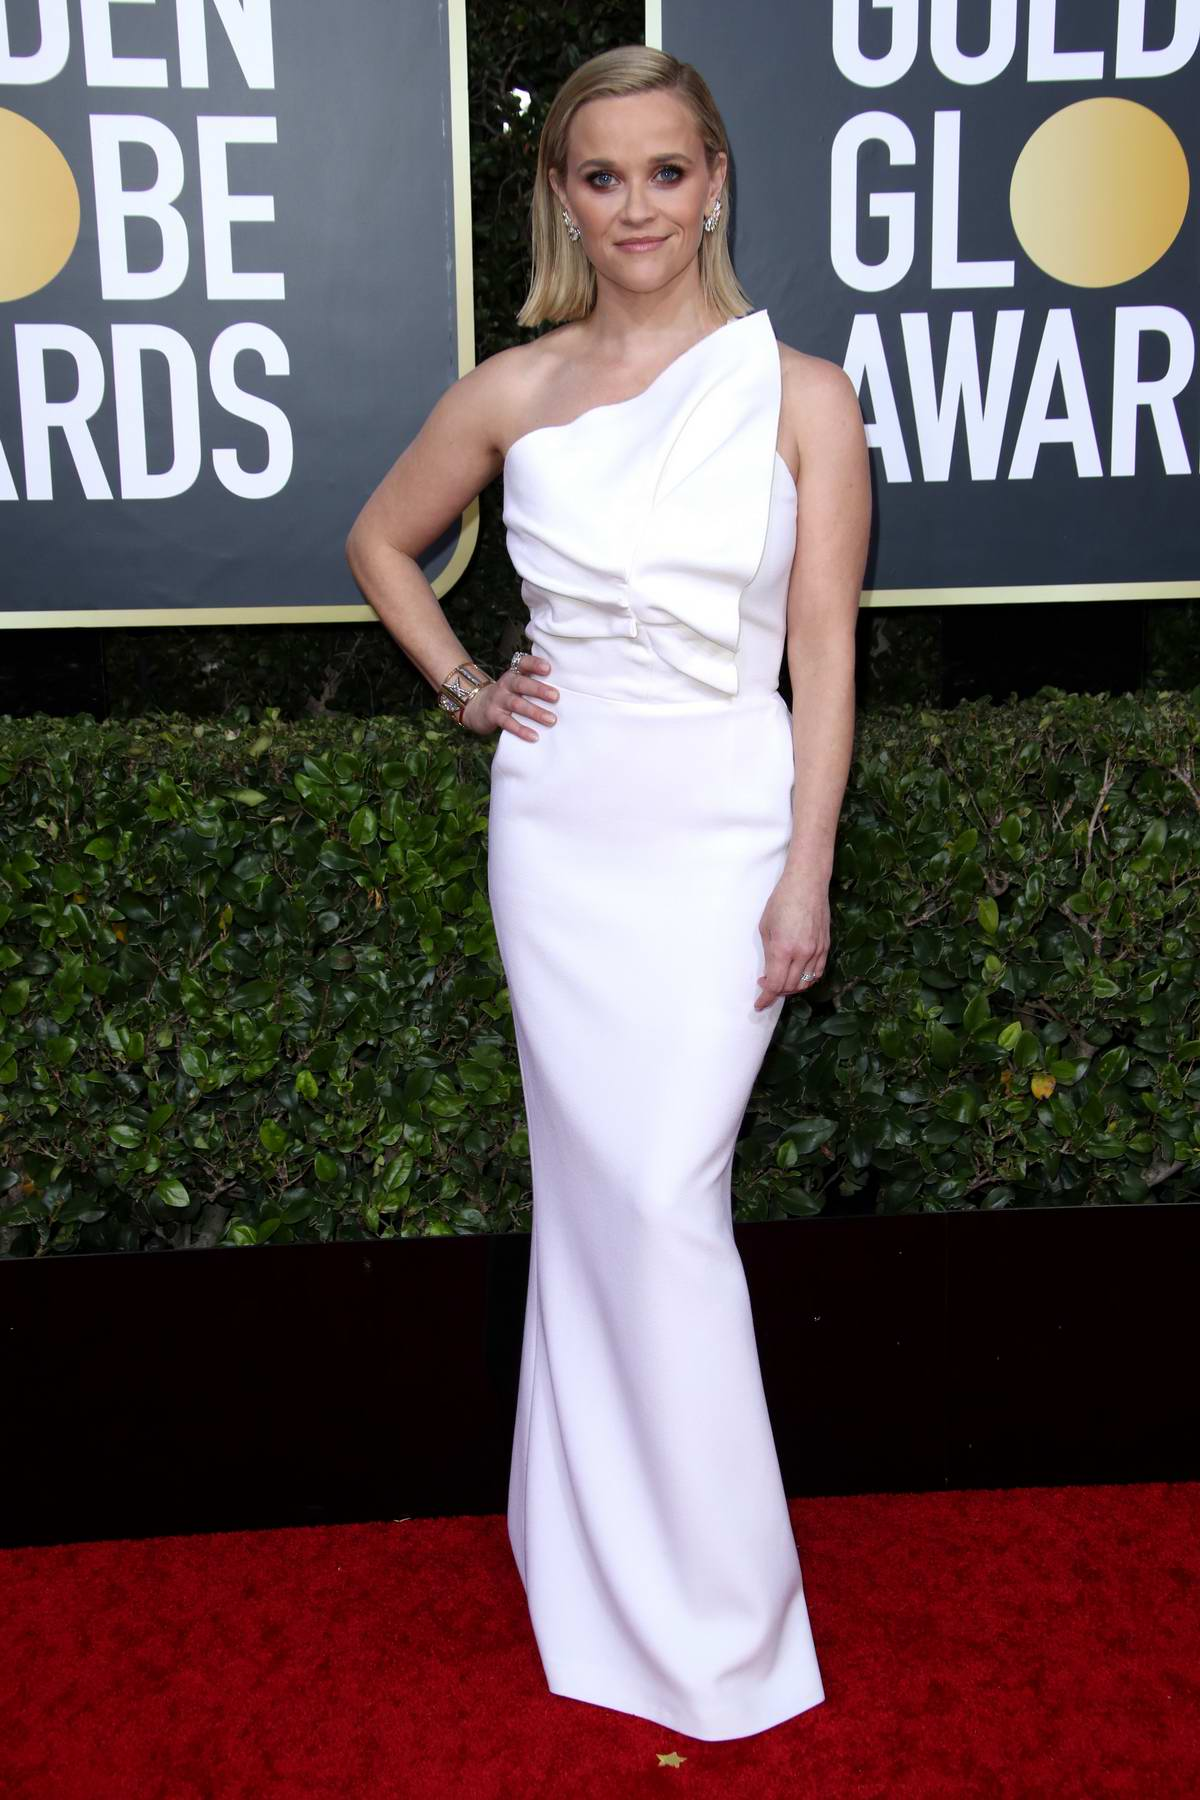 reese-witherspoon-attends-the-77th-annual-golden-globe-awards-at-the-beverly-hilton-hotel-in-beverly-hills-california-050120_5.jpg